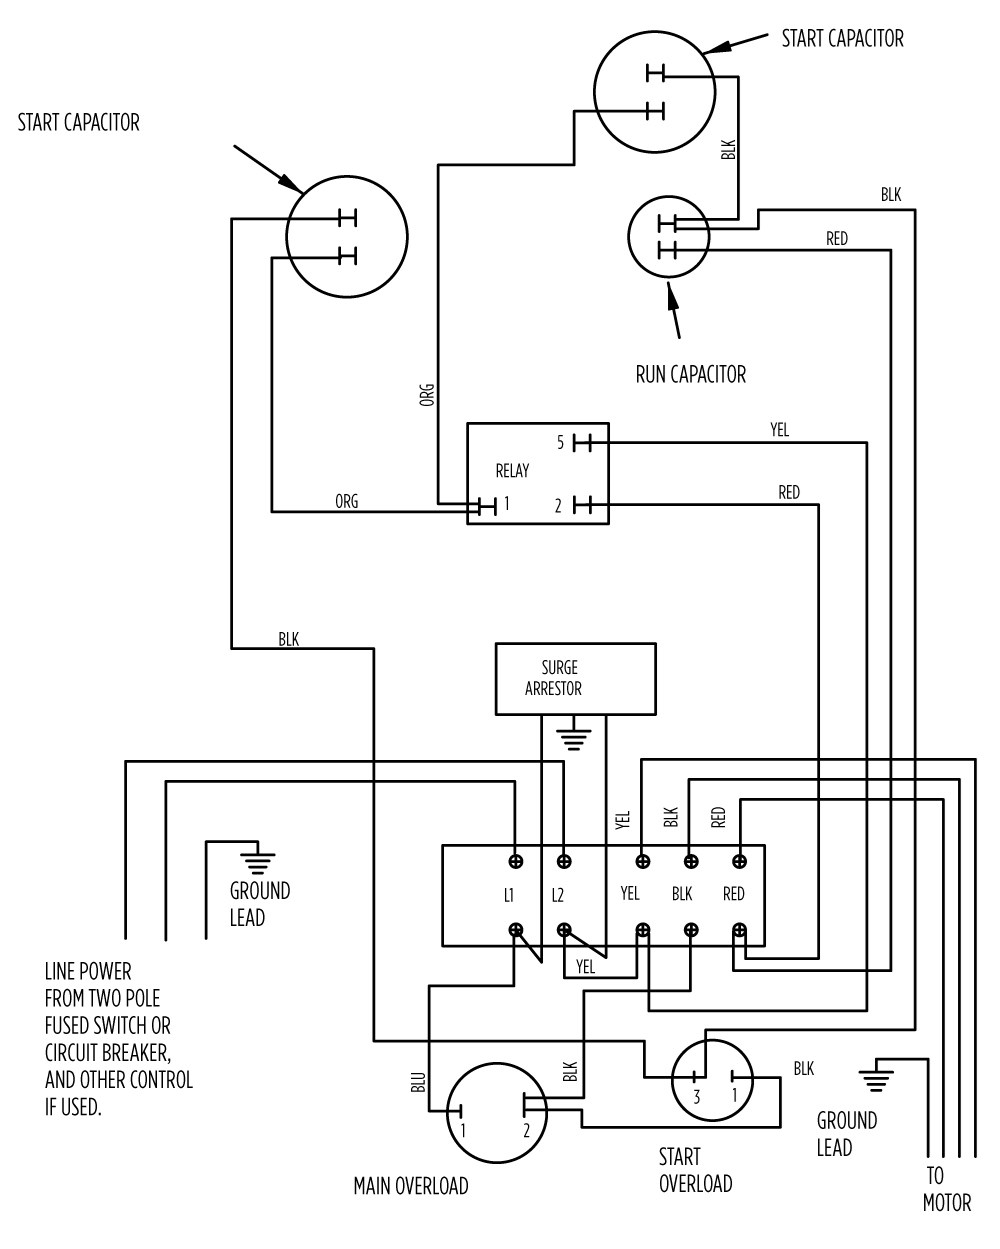 75 hp standard 282 201 9210_aim gallery?format=jpg&quality=80 aim manual page 56 single phase motors and controls motor franklin control box wiring diagram at n-0.co